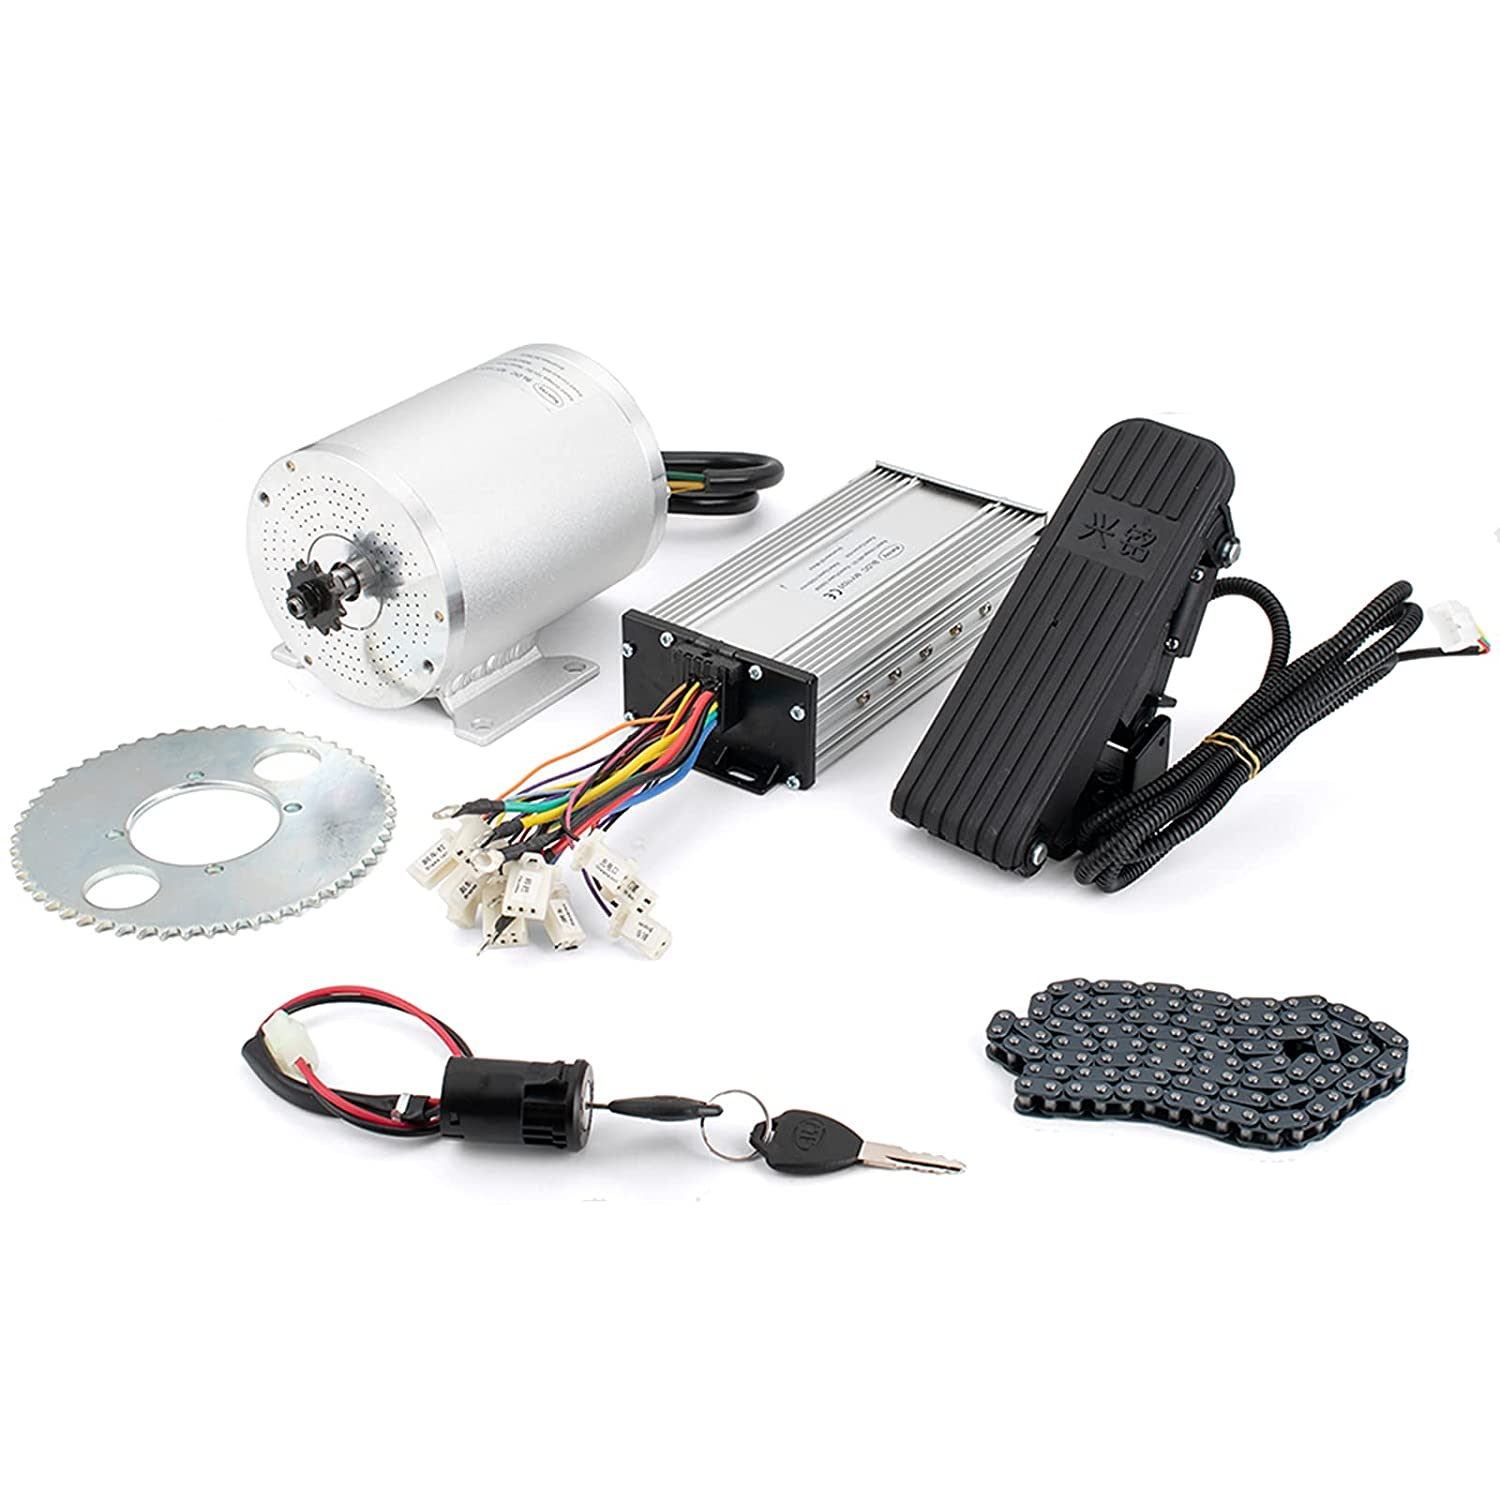 36V Electric Brushless Department store DC Motor Mid 1000W Kits 3100RP BLDC Max 86% OFF